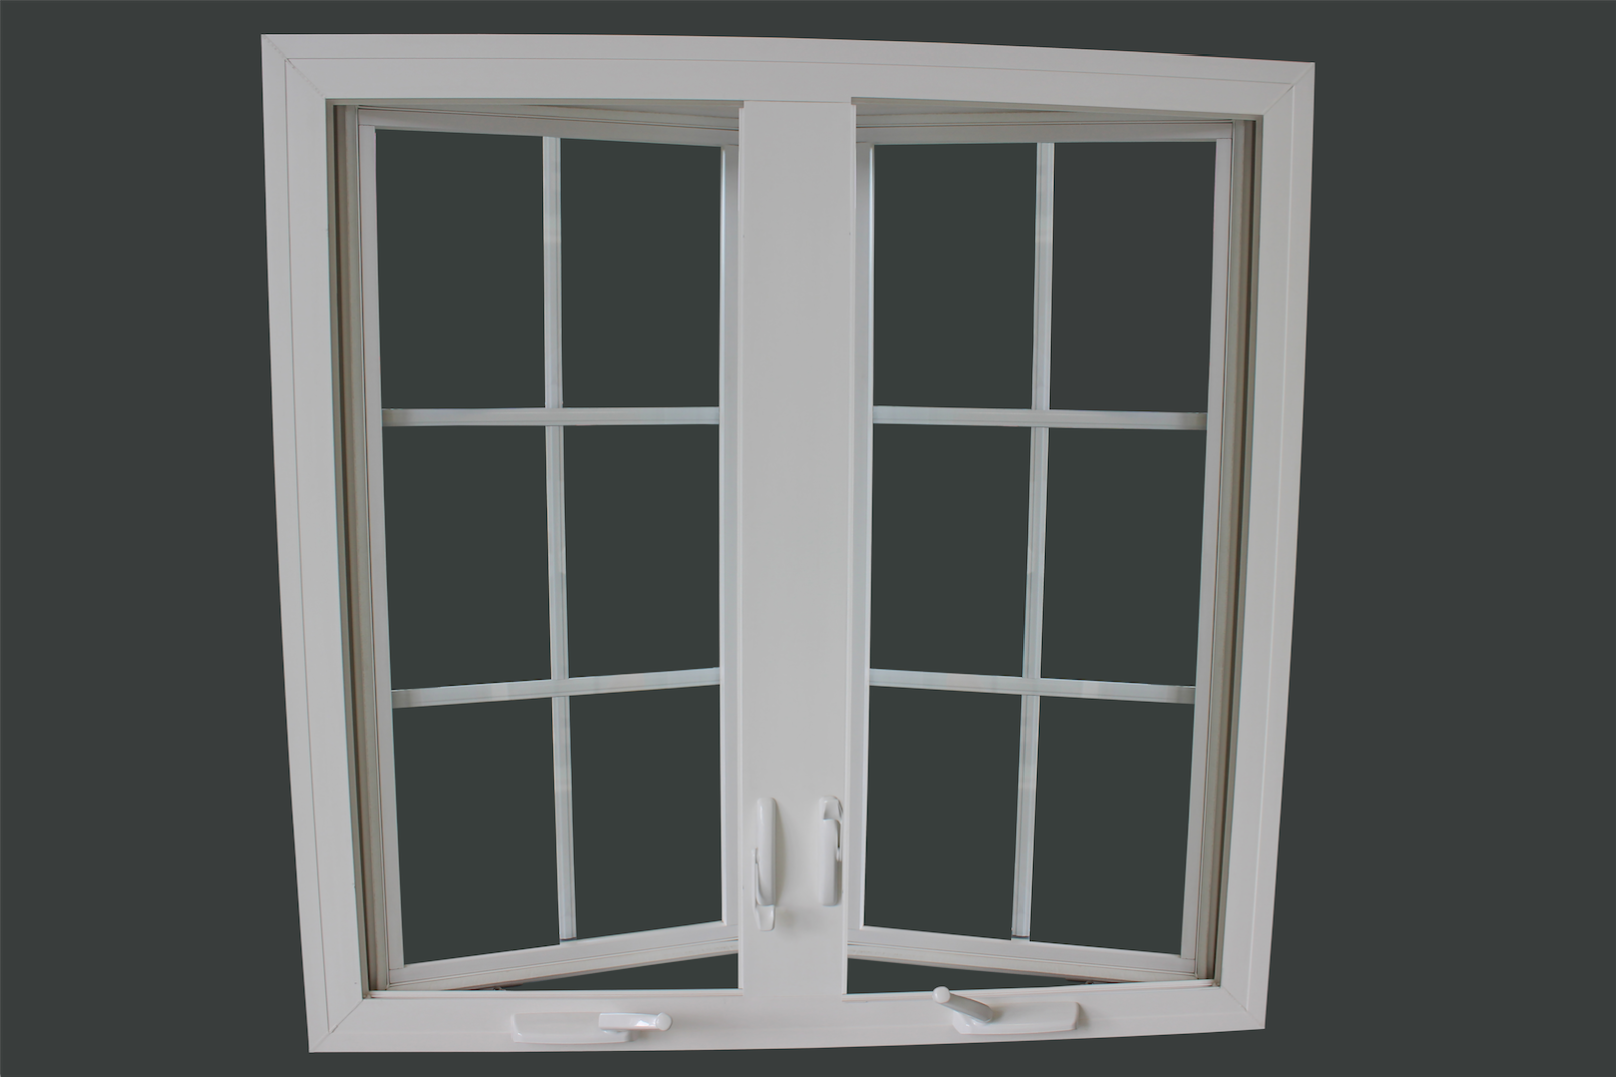 Replacement casement windows specialty wholesale supply for Replacement casement windows